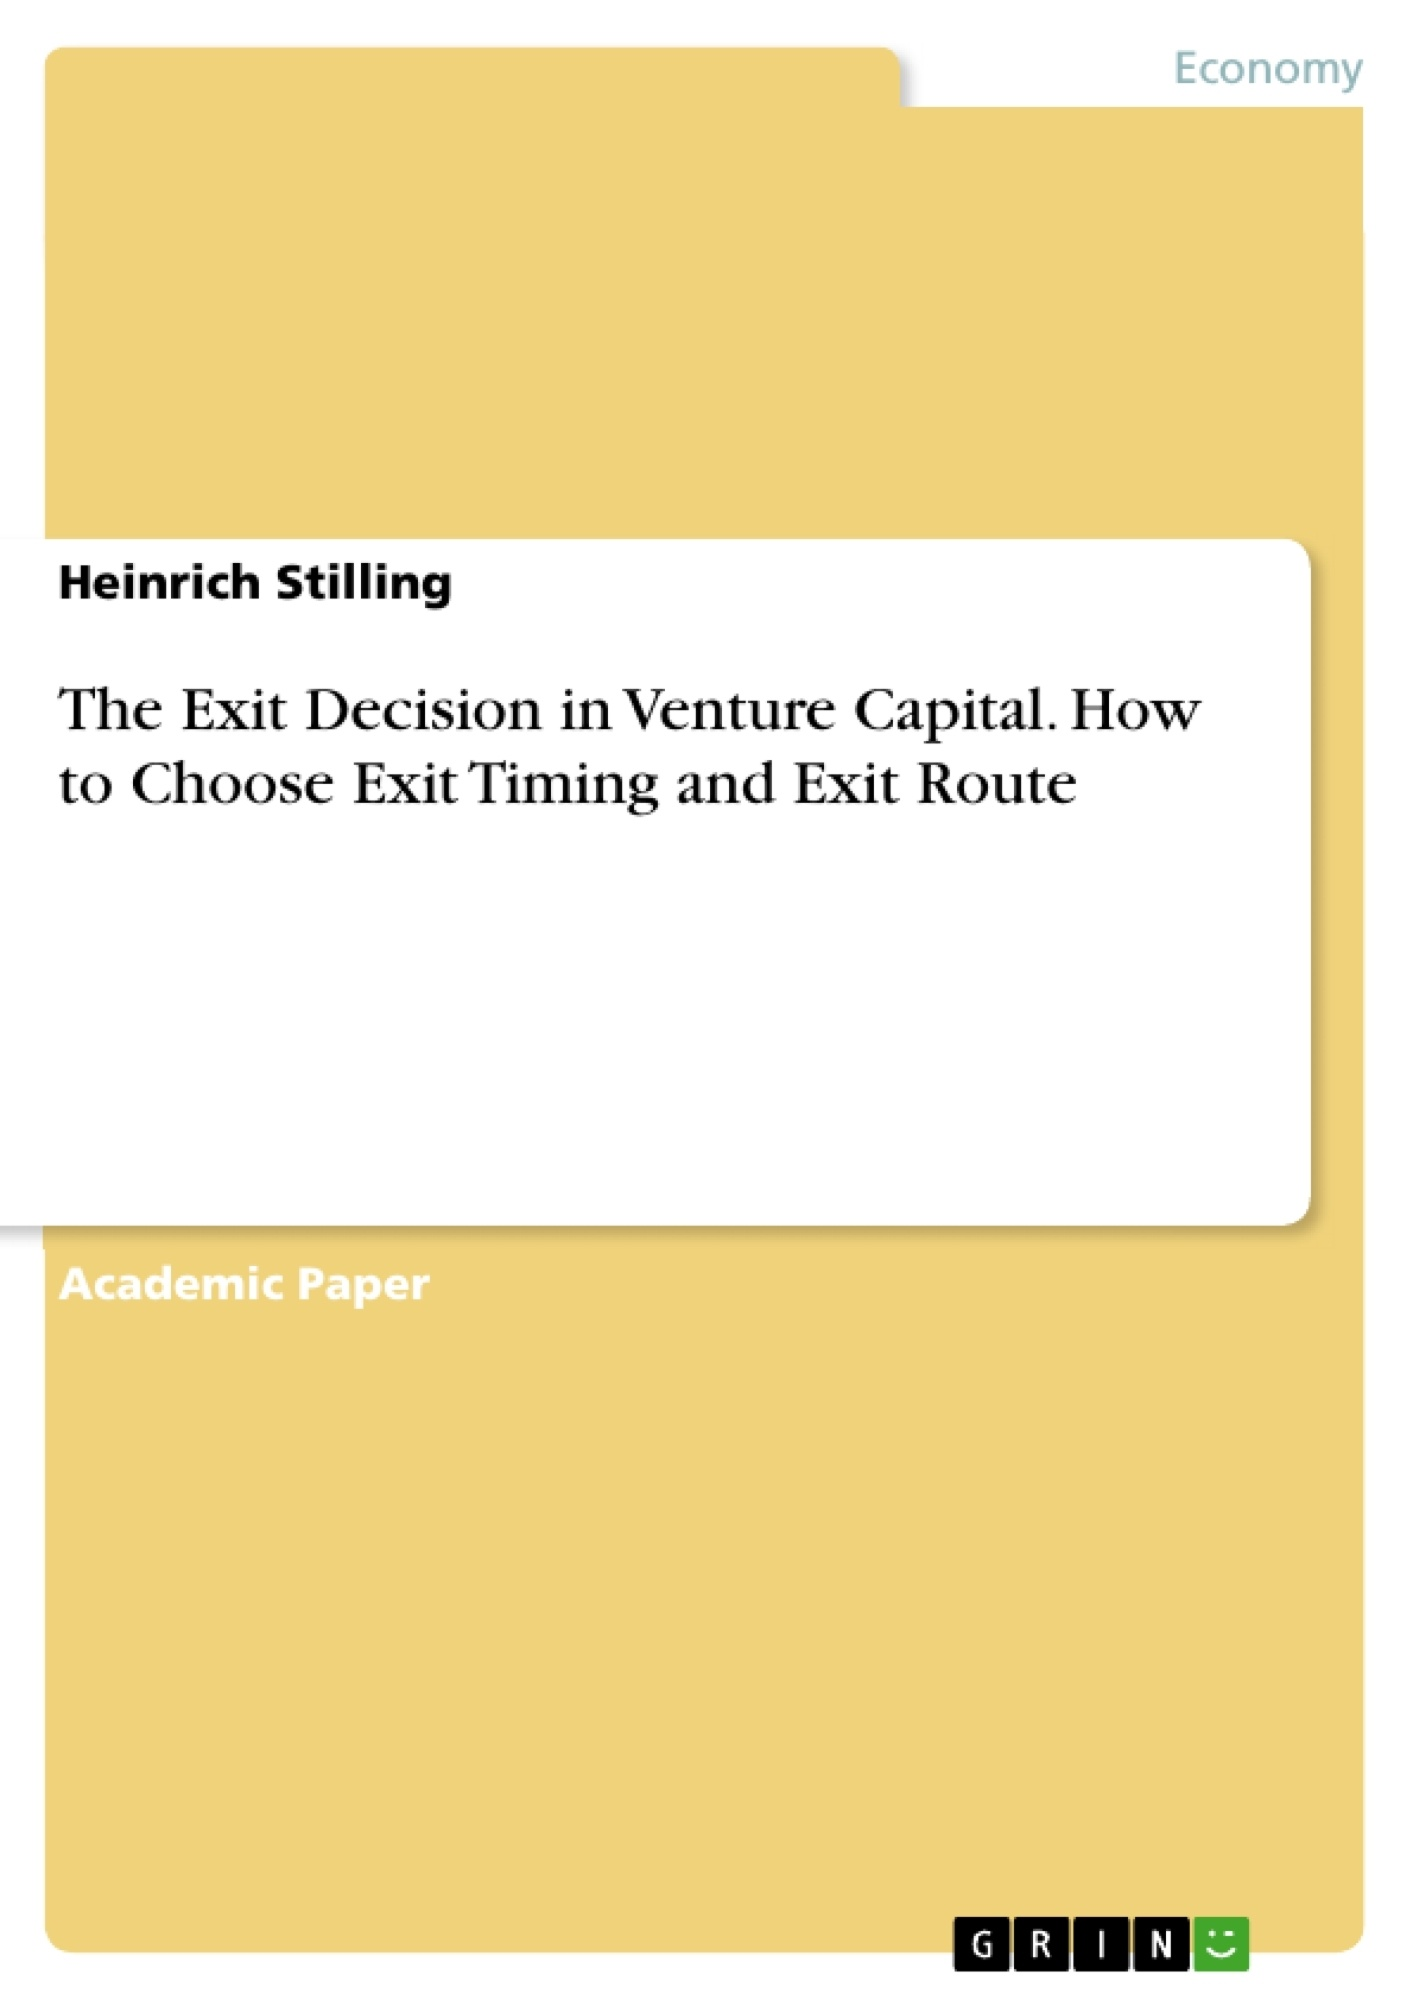 Title: The Exit Decision in Venture Capital. How to Choose Exit Timing and Exit Route